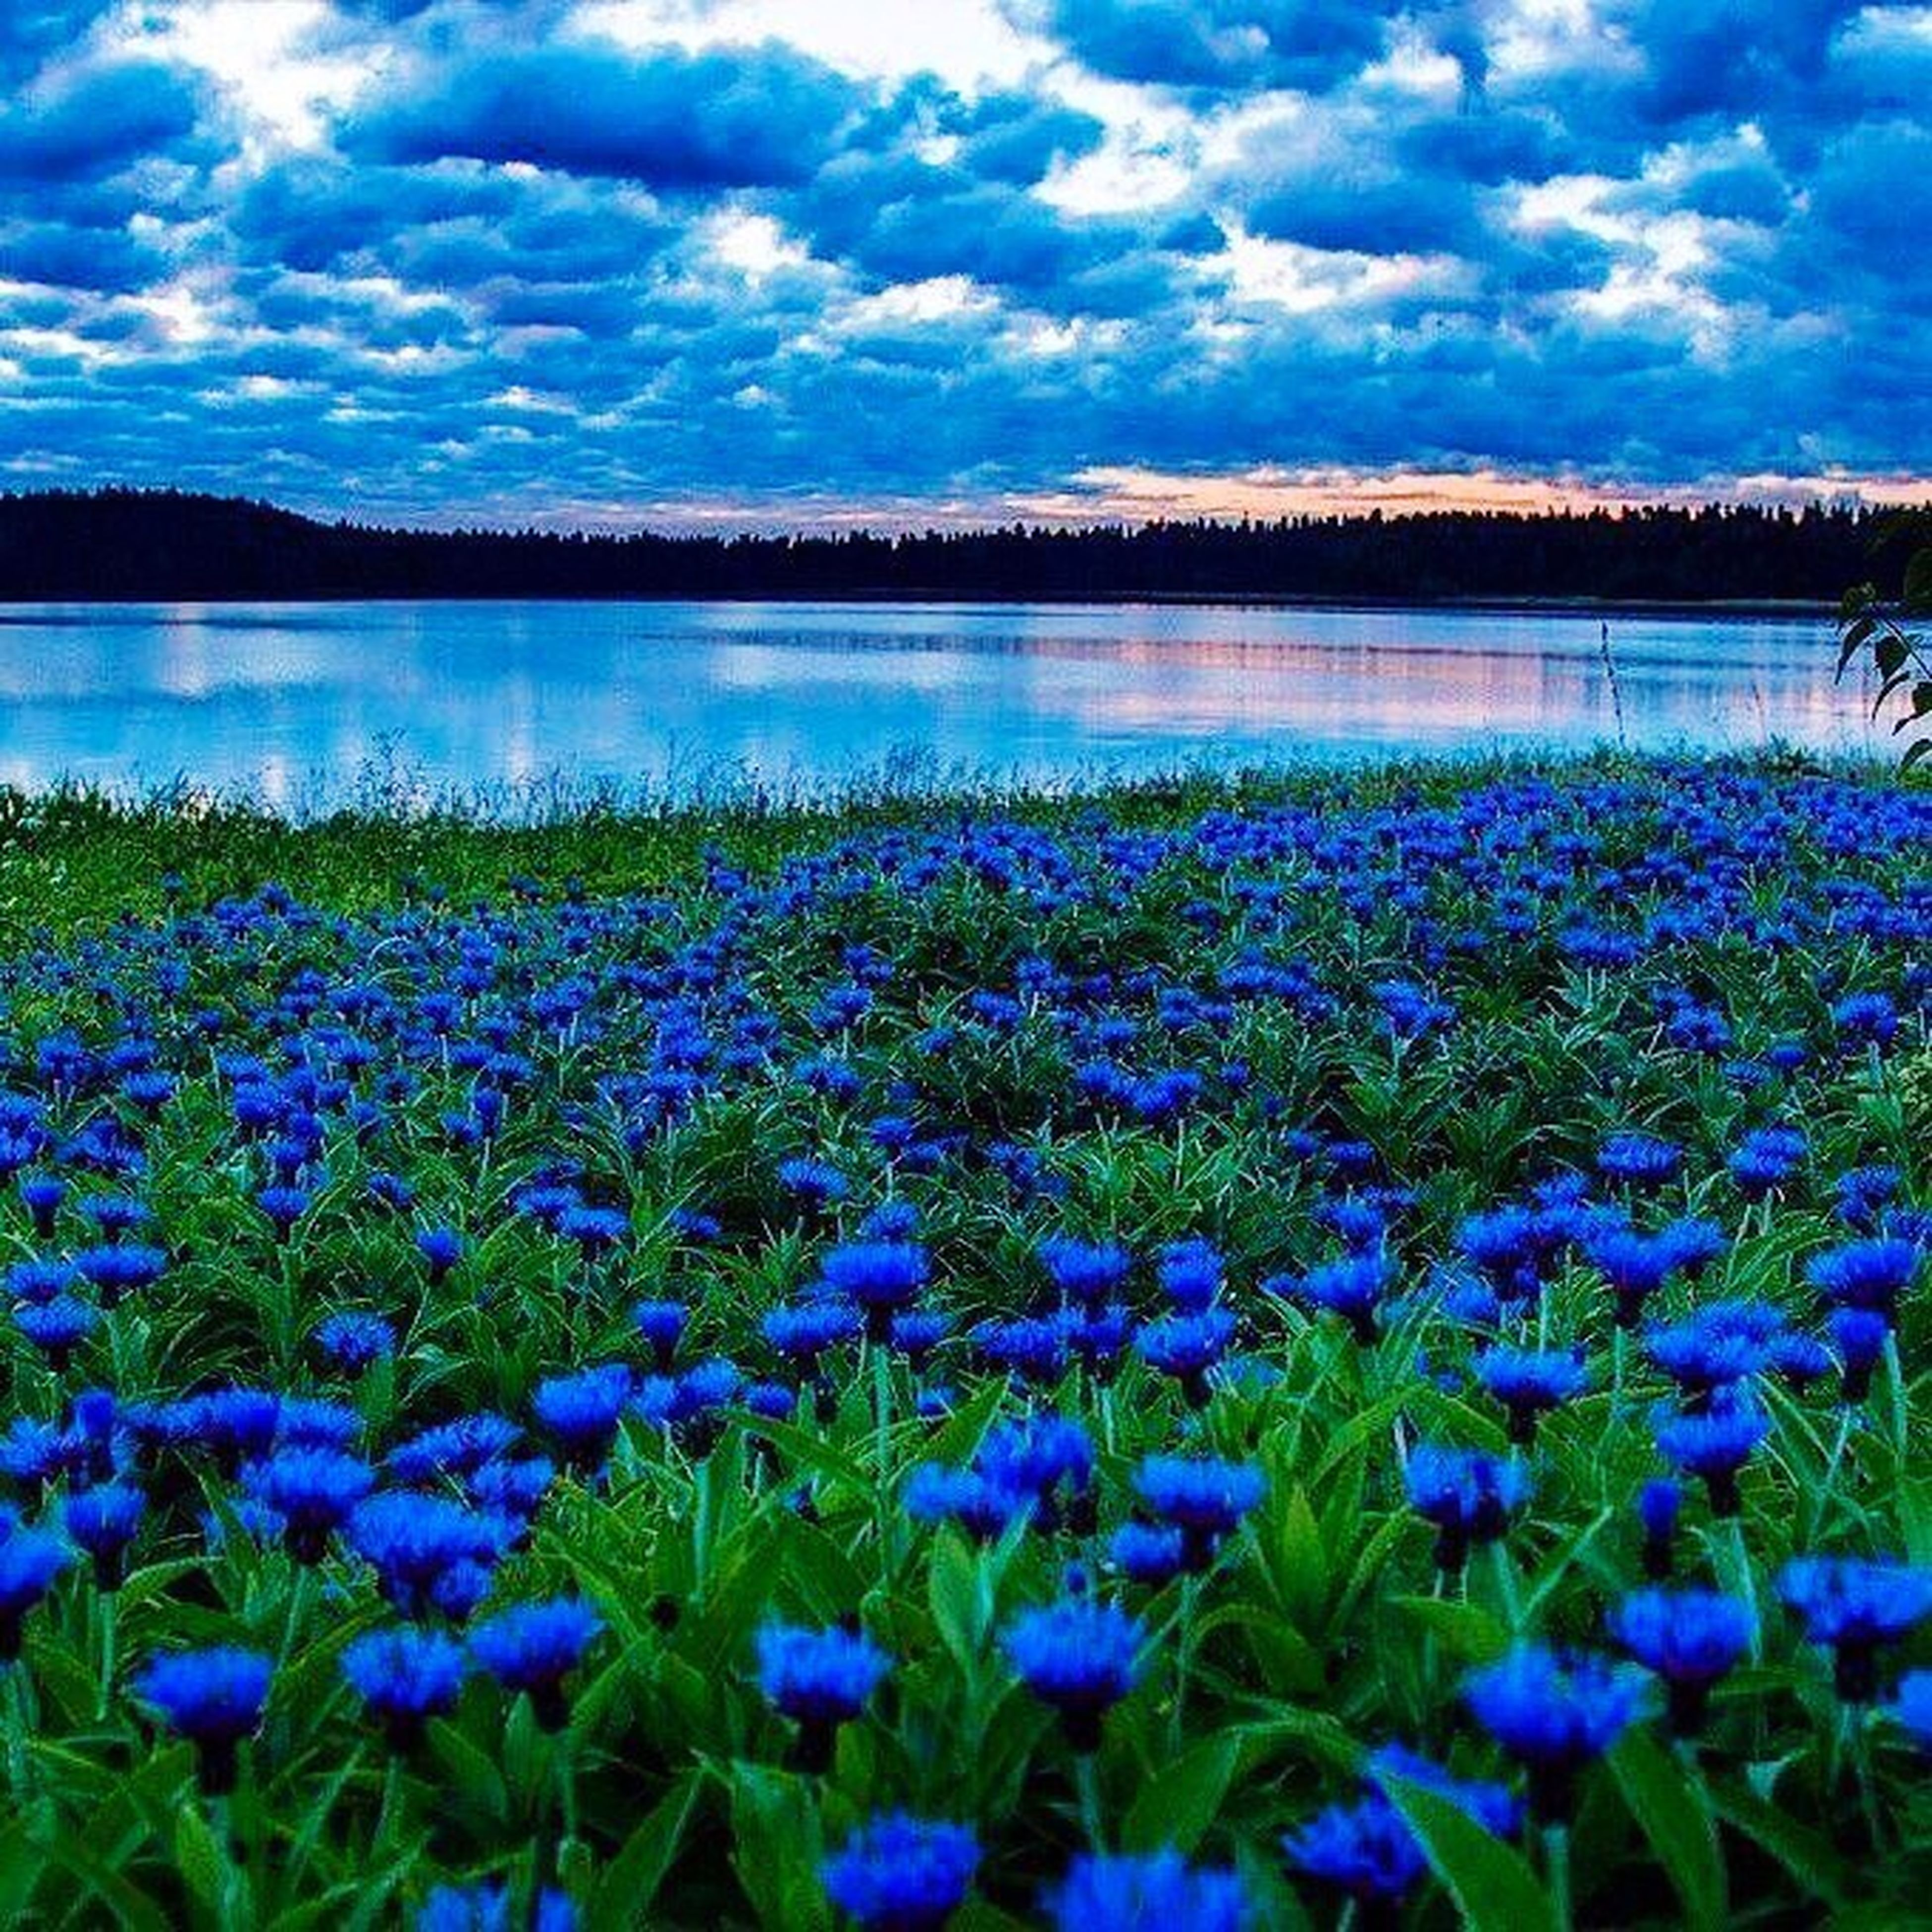 beauty in nature, nature, tranquility, scenics, tranquil scene, lake, growth, outdoors, cloud - sky, sky, water, flower, day, no people, plant, idyllic, blue, travel destinations, landscape, freshness, grass, fragility